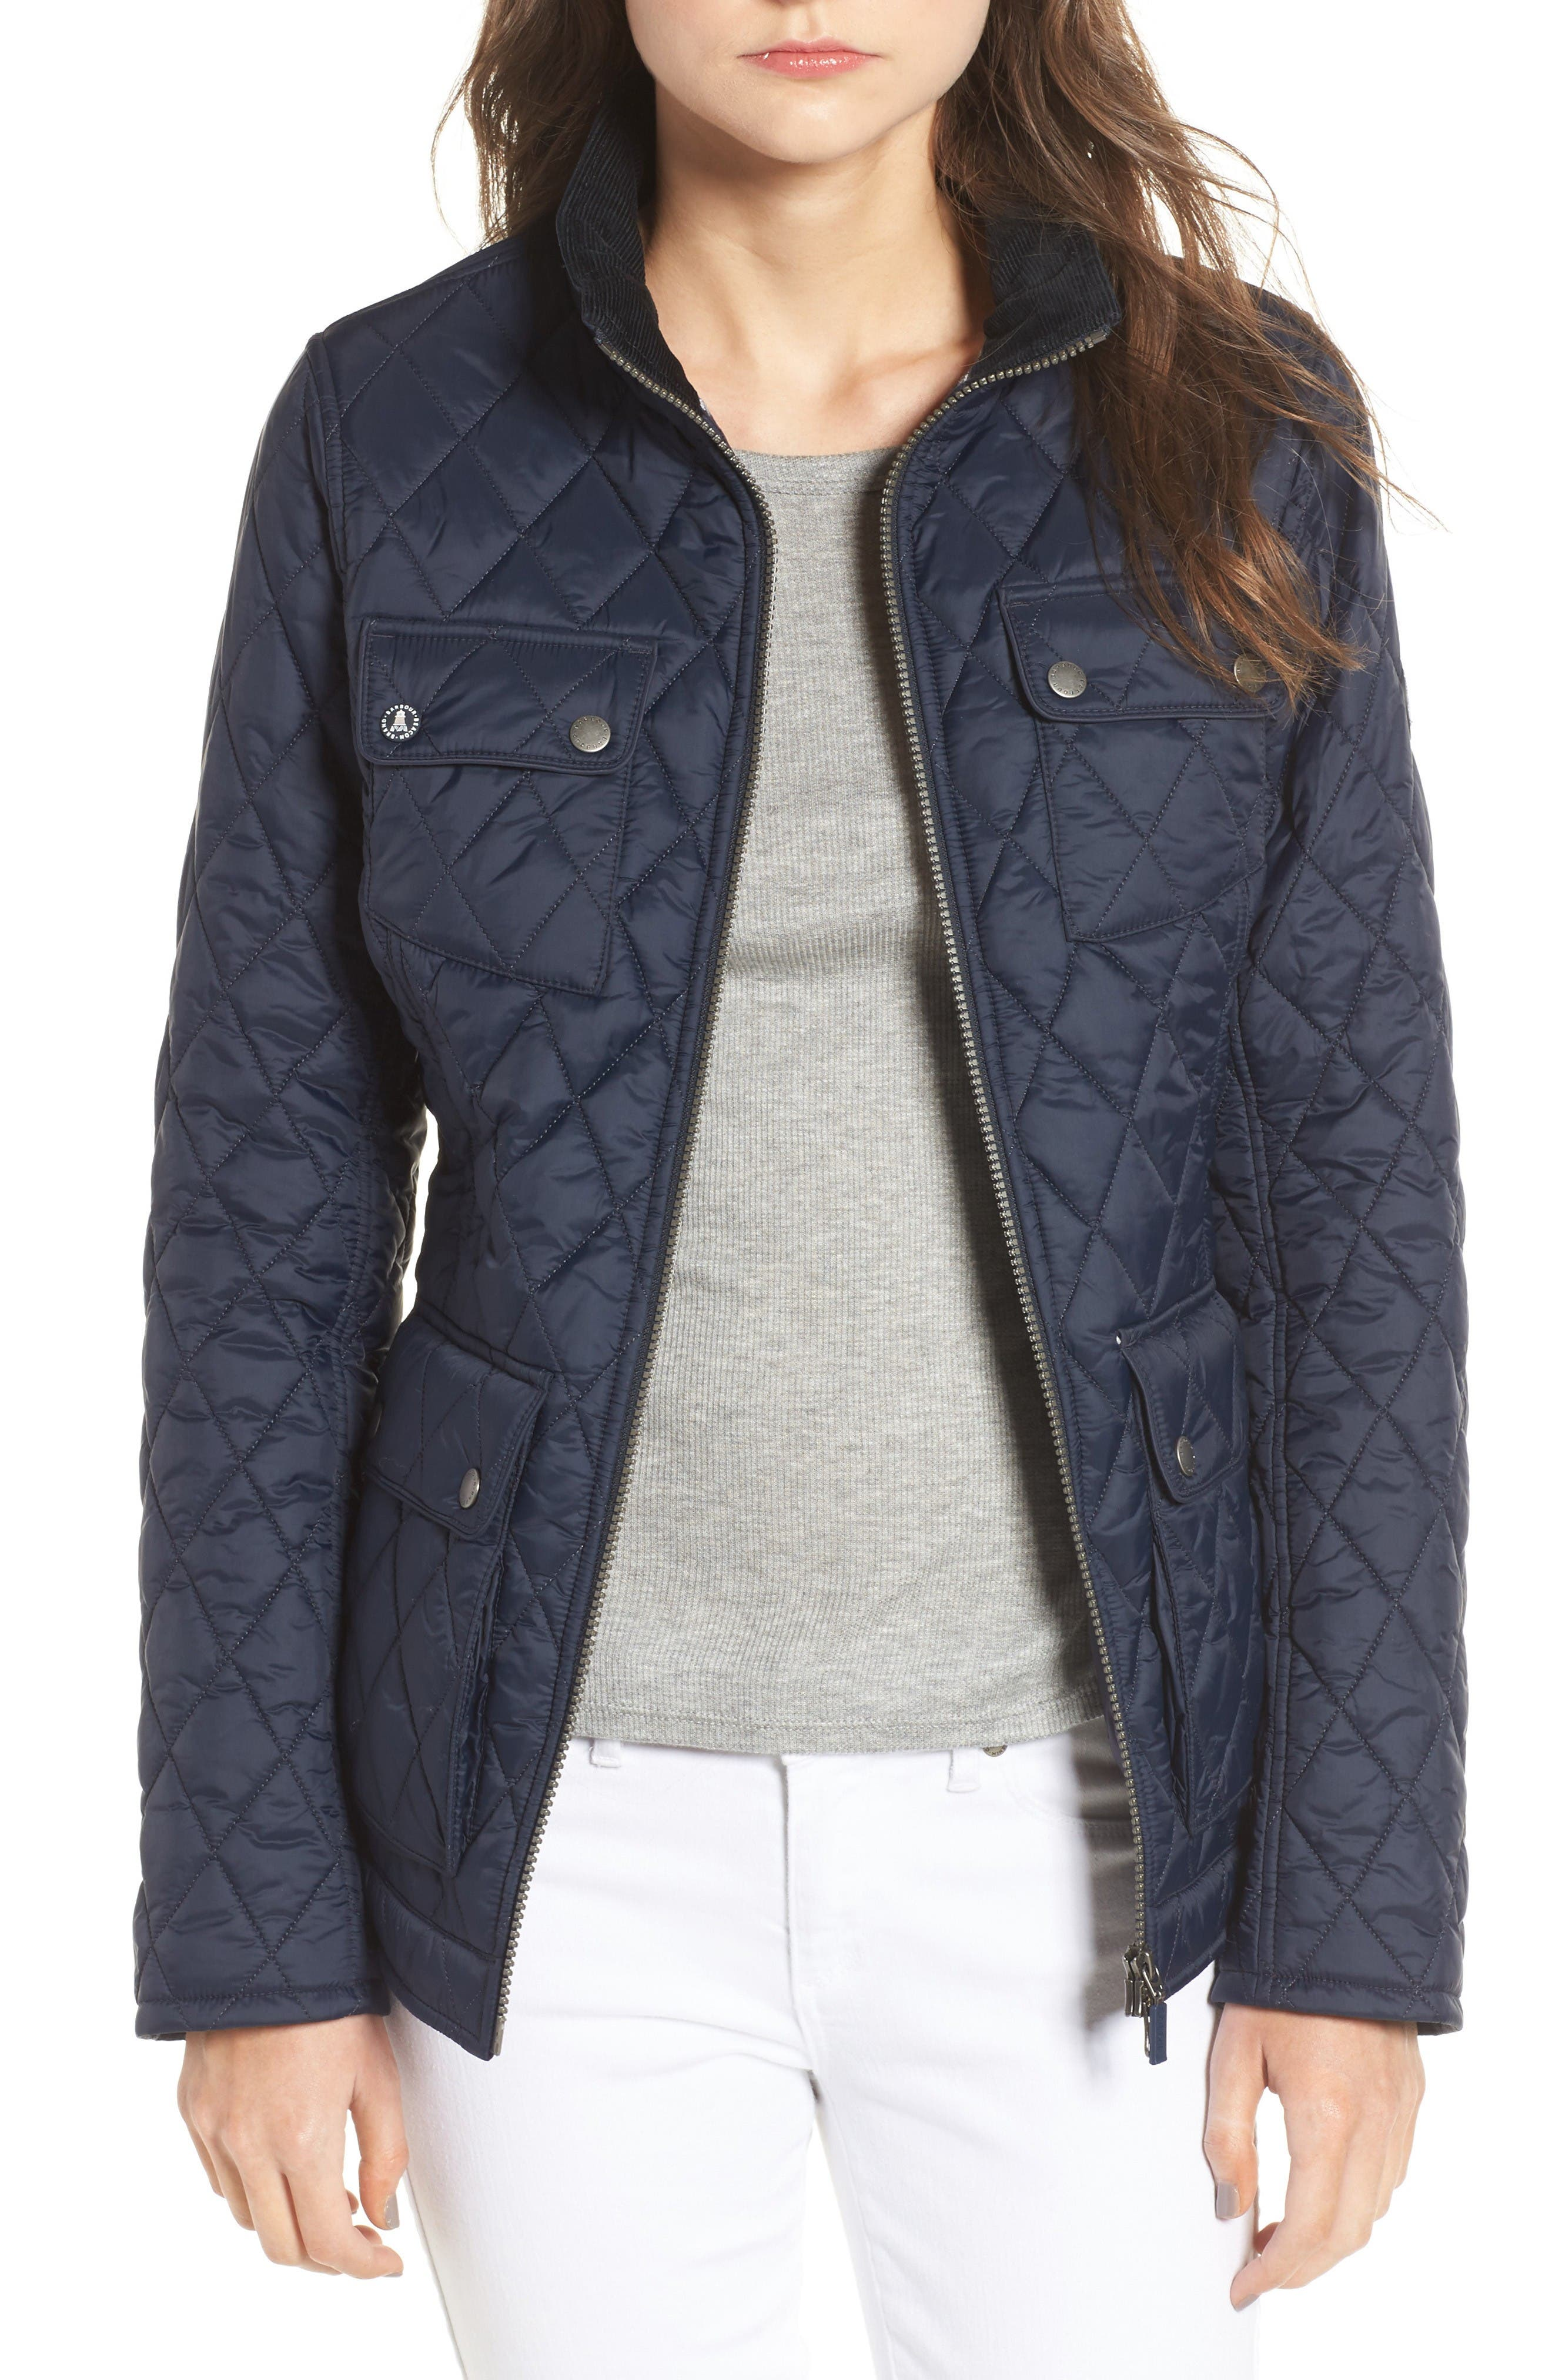 Dolostone Quilted Jacket,                         Main,                         color, Dark Navy